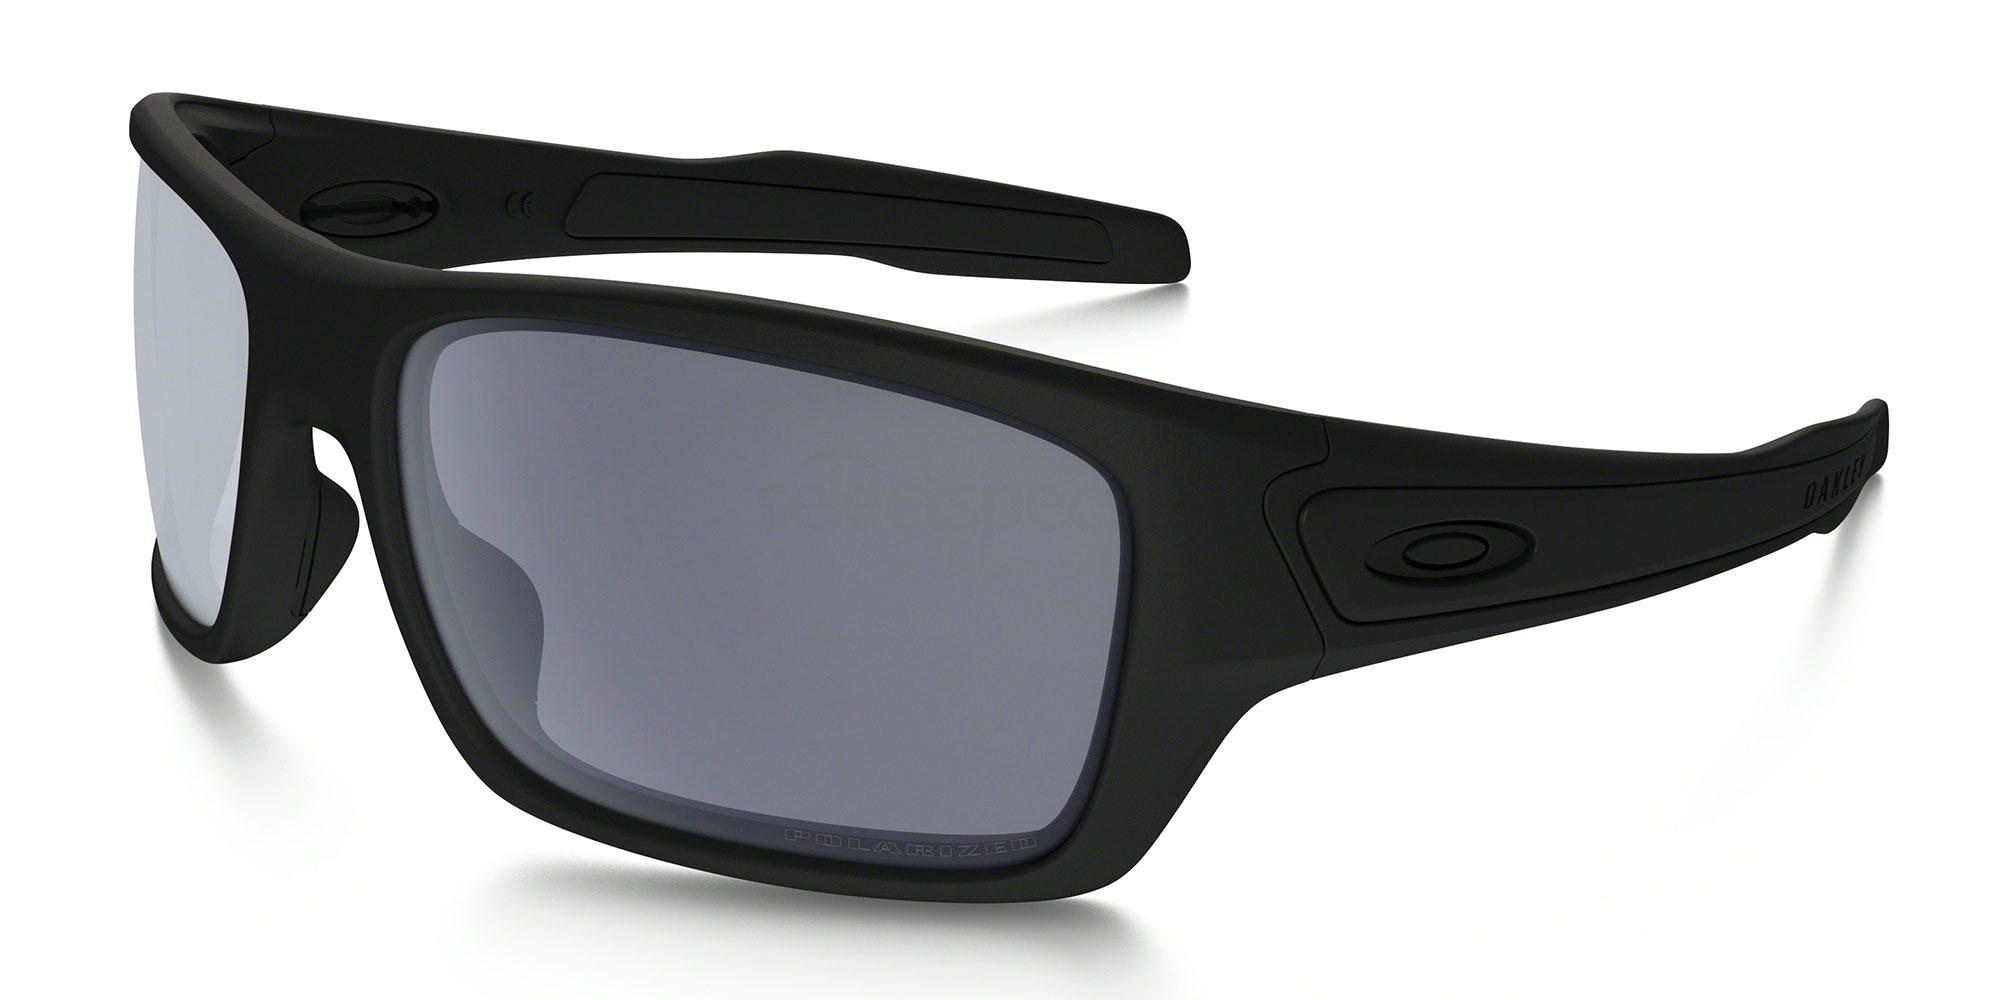 Oakley-Turnine-sunglasses